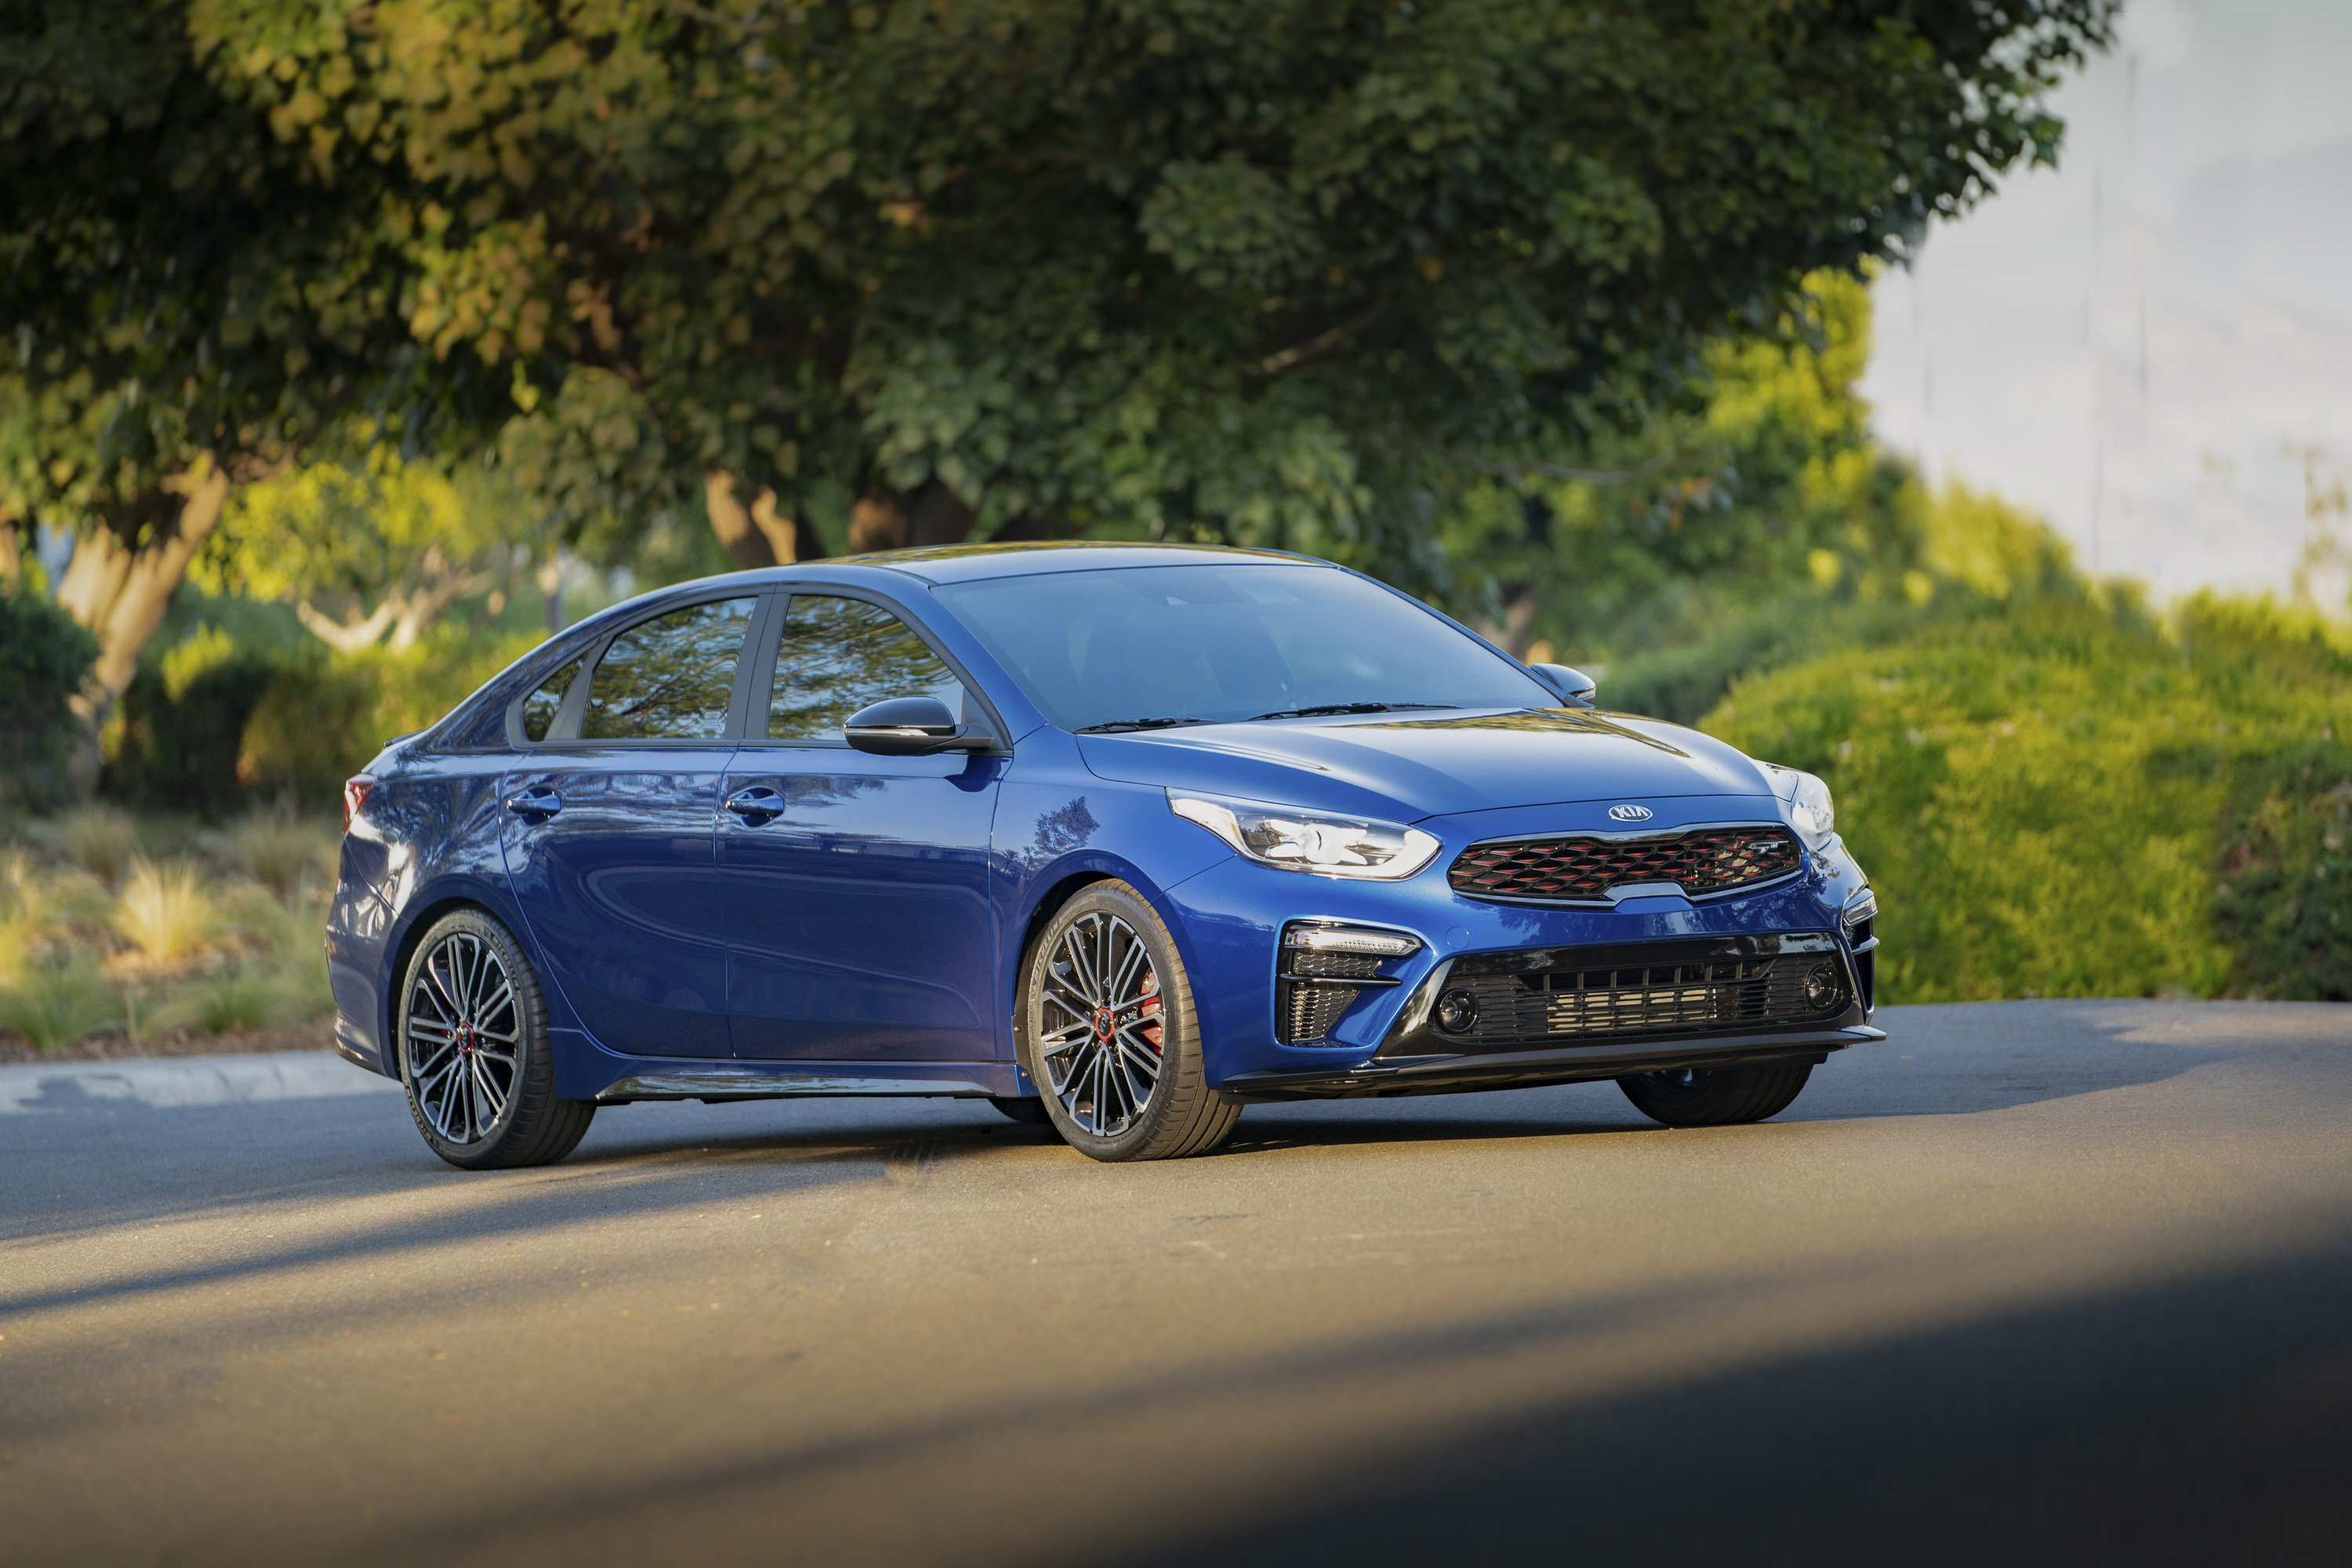 69 Gallery of Kia Forte Gt 2020 Price Price and Review for Kia Forte Gt 2020 Price